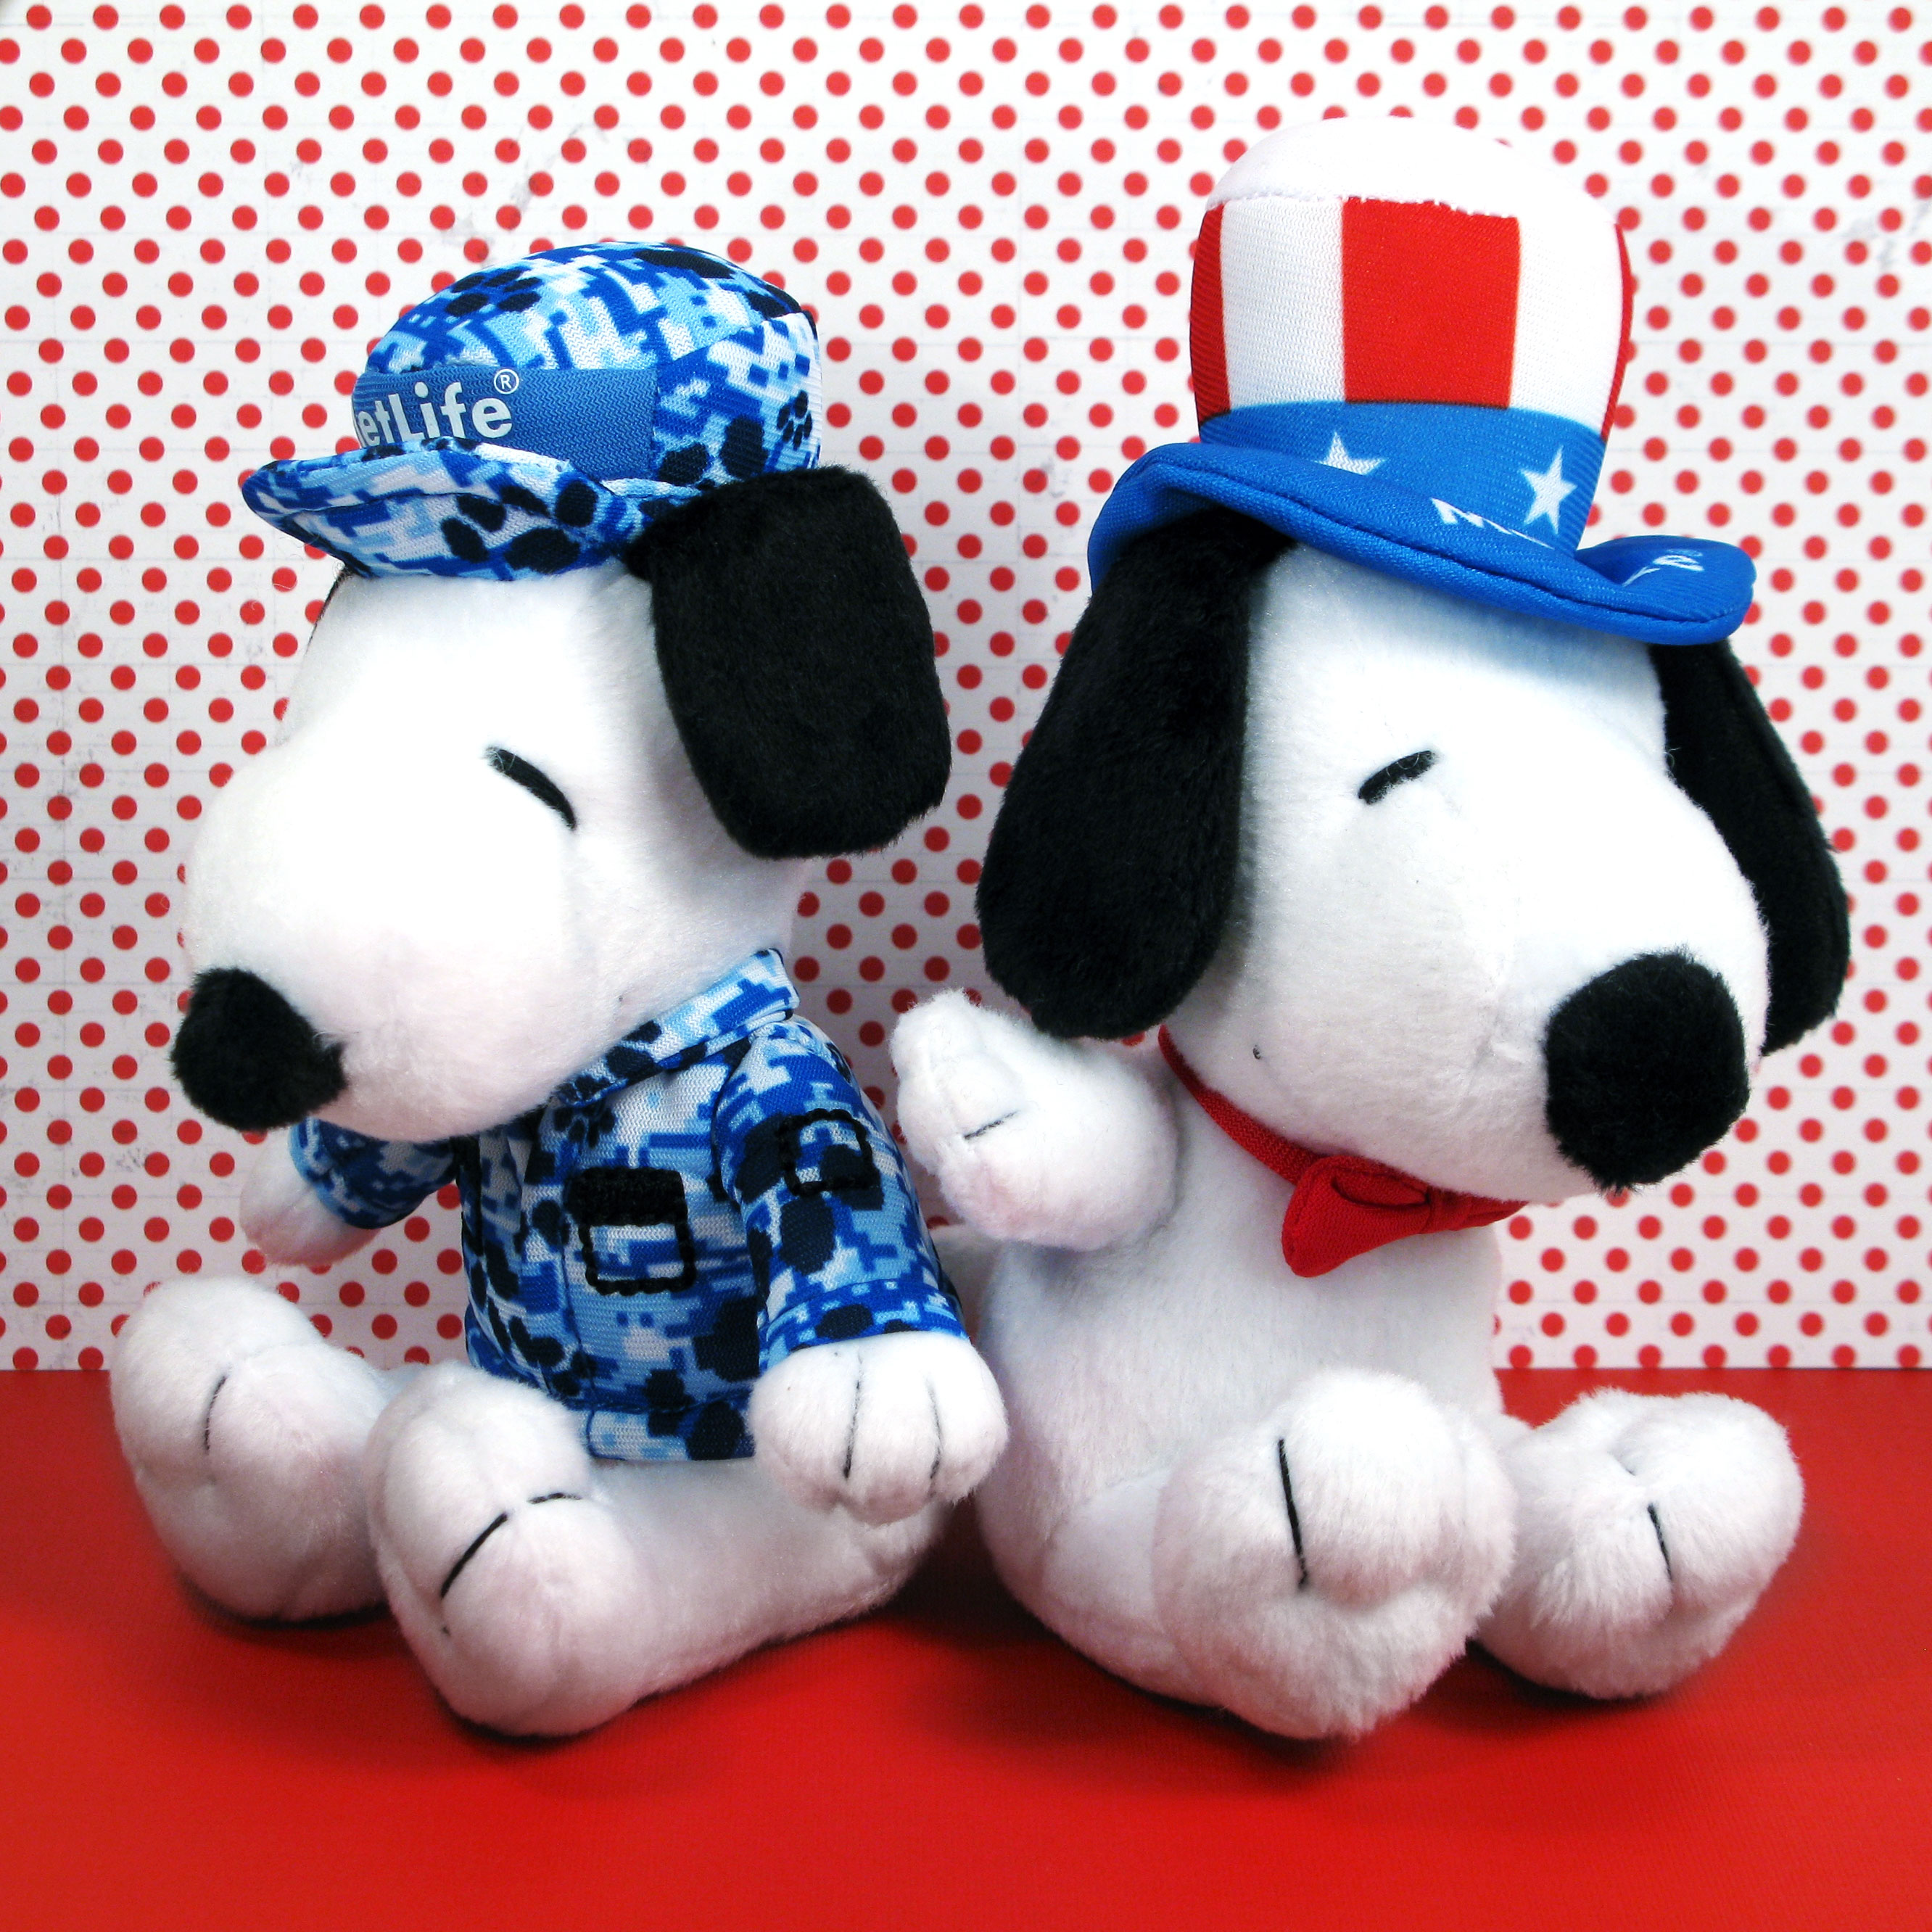 Get Snoopy, It Pays!